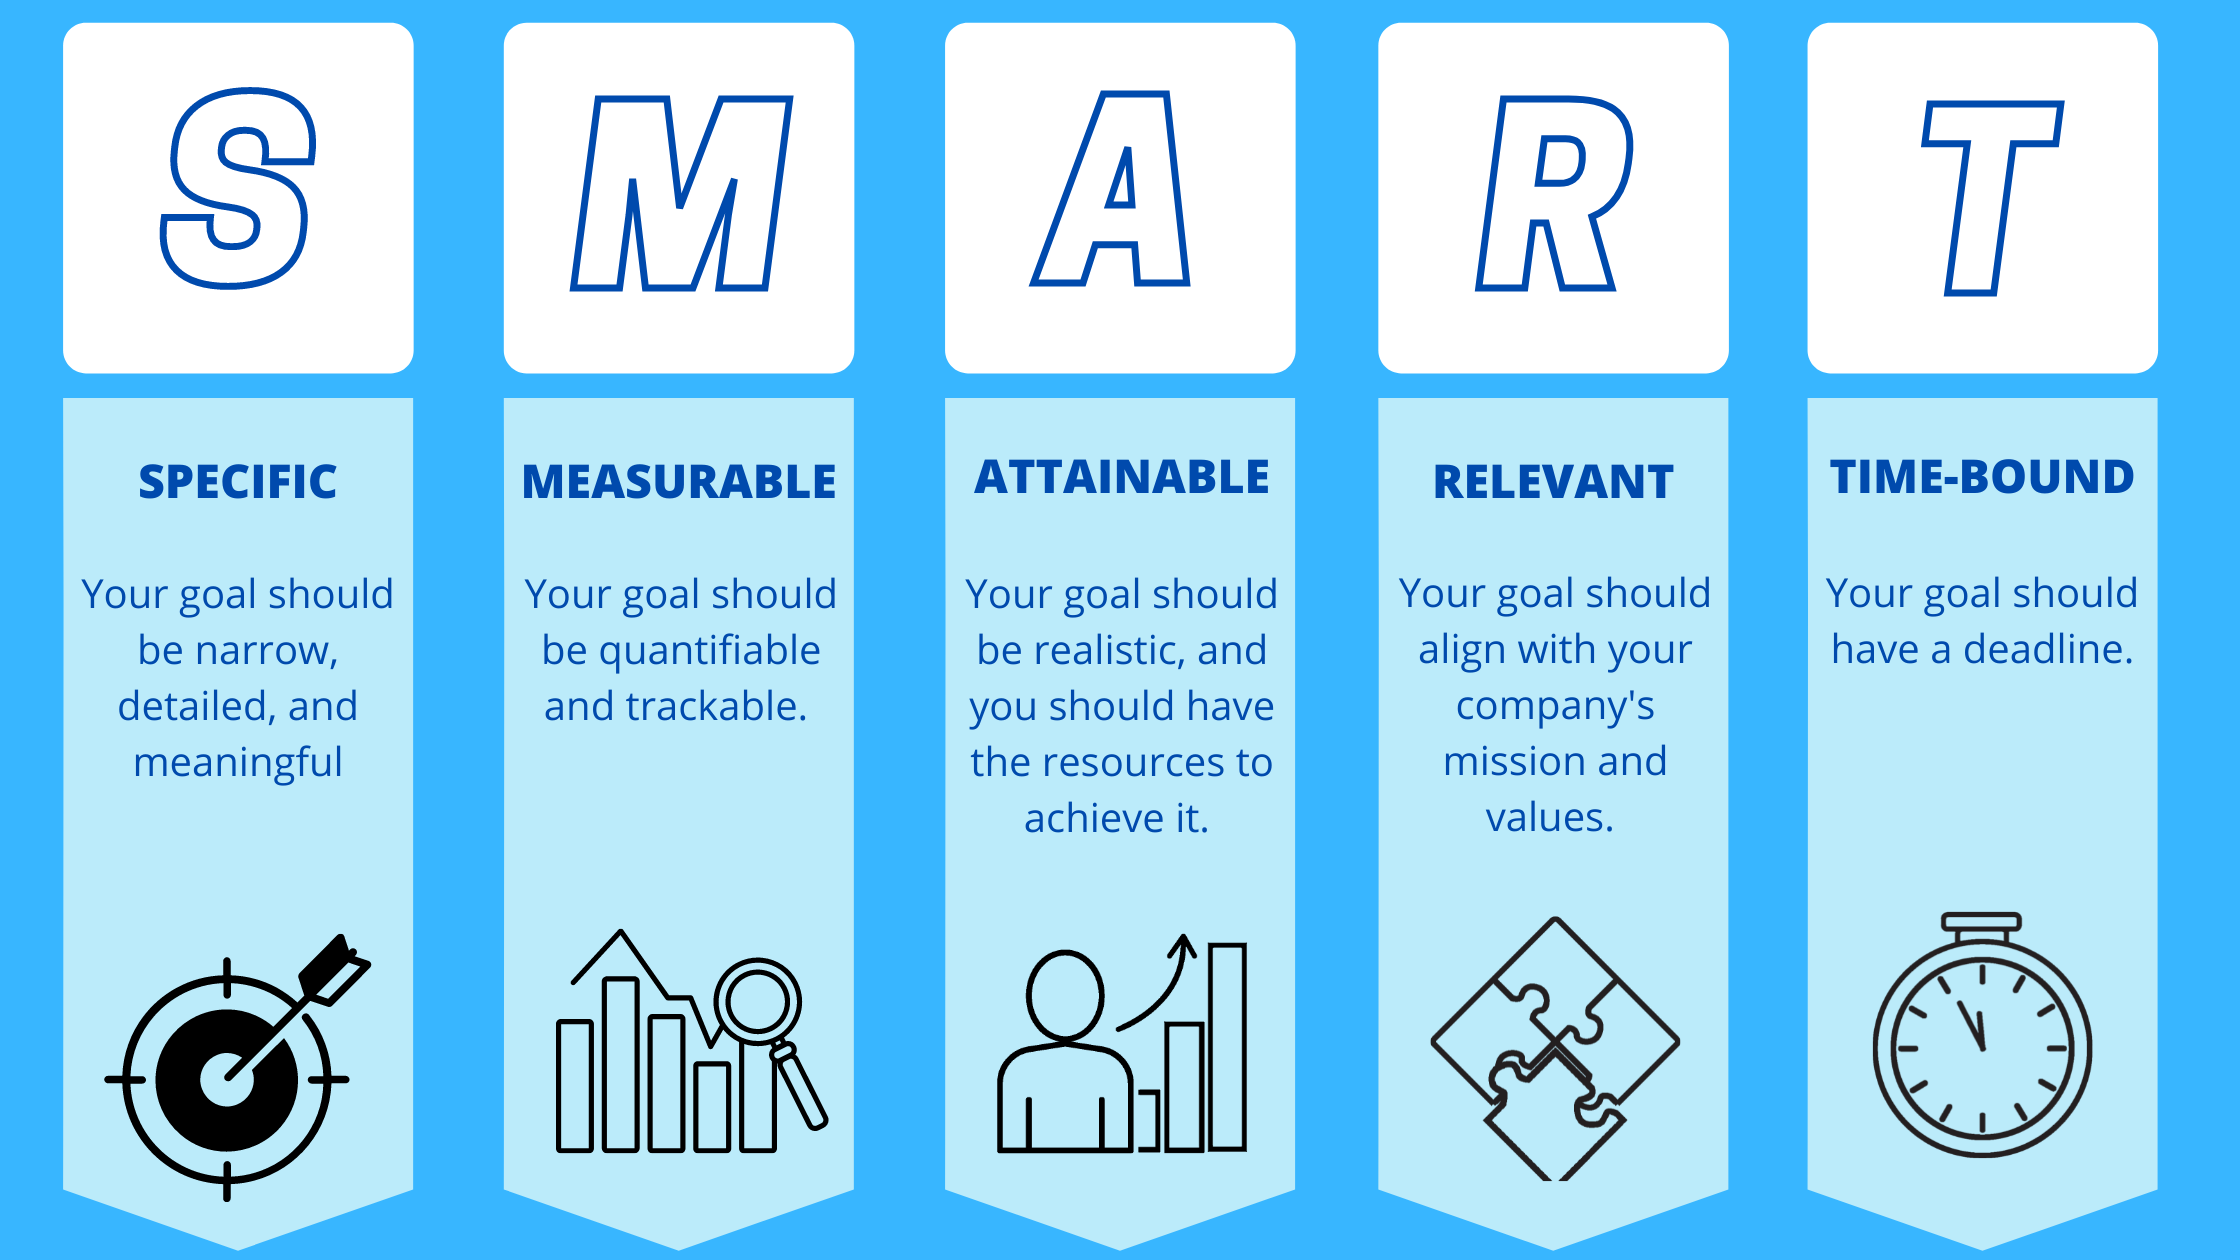 SMART Goals graphic with icons